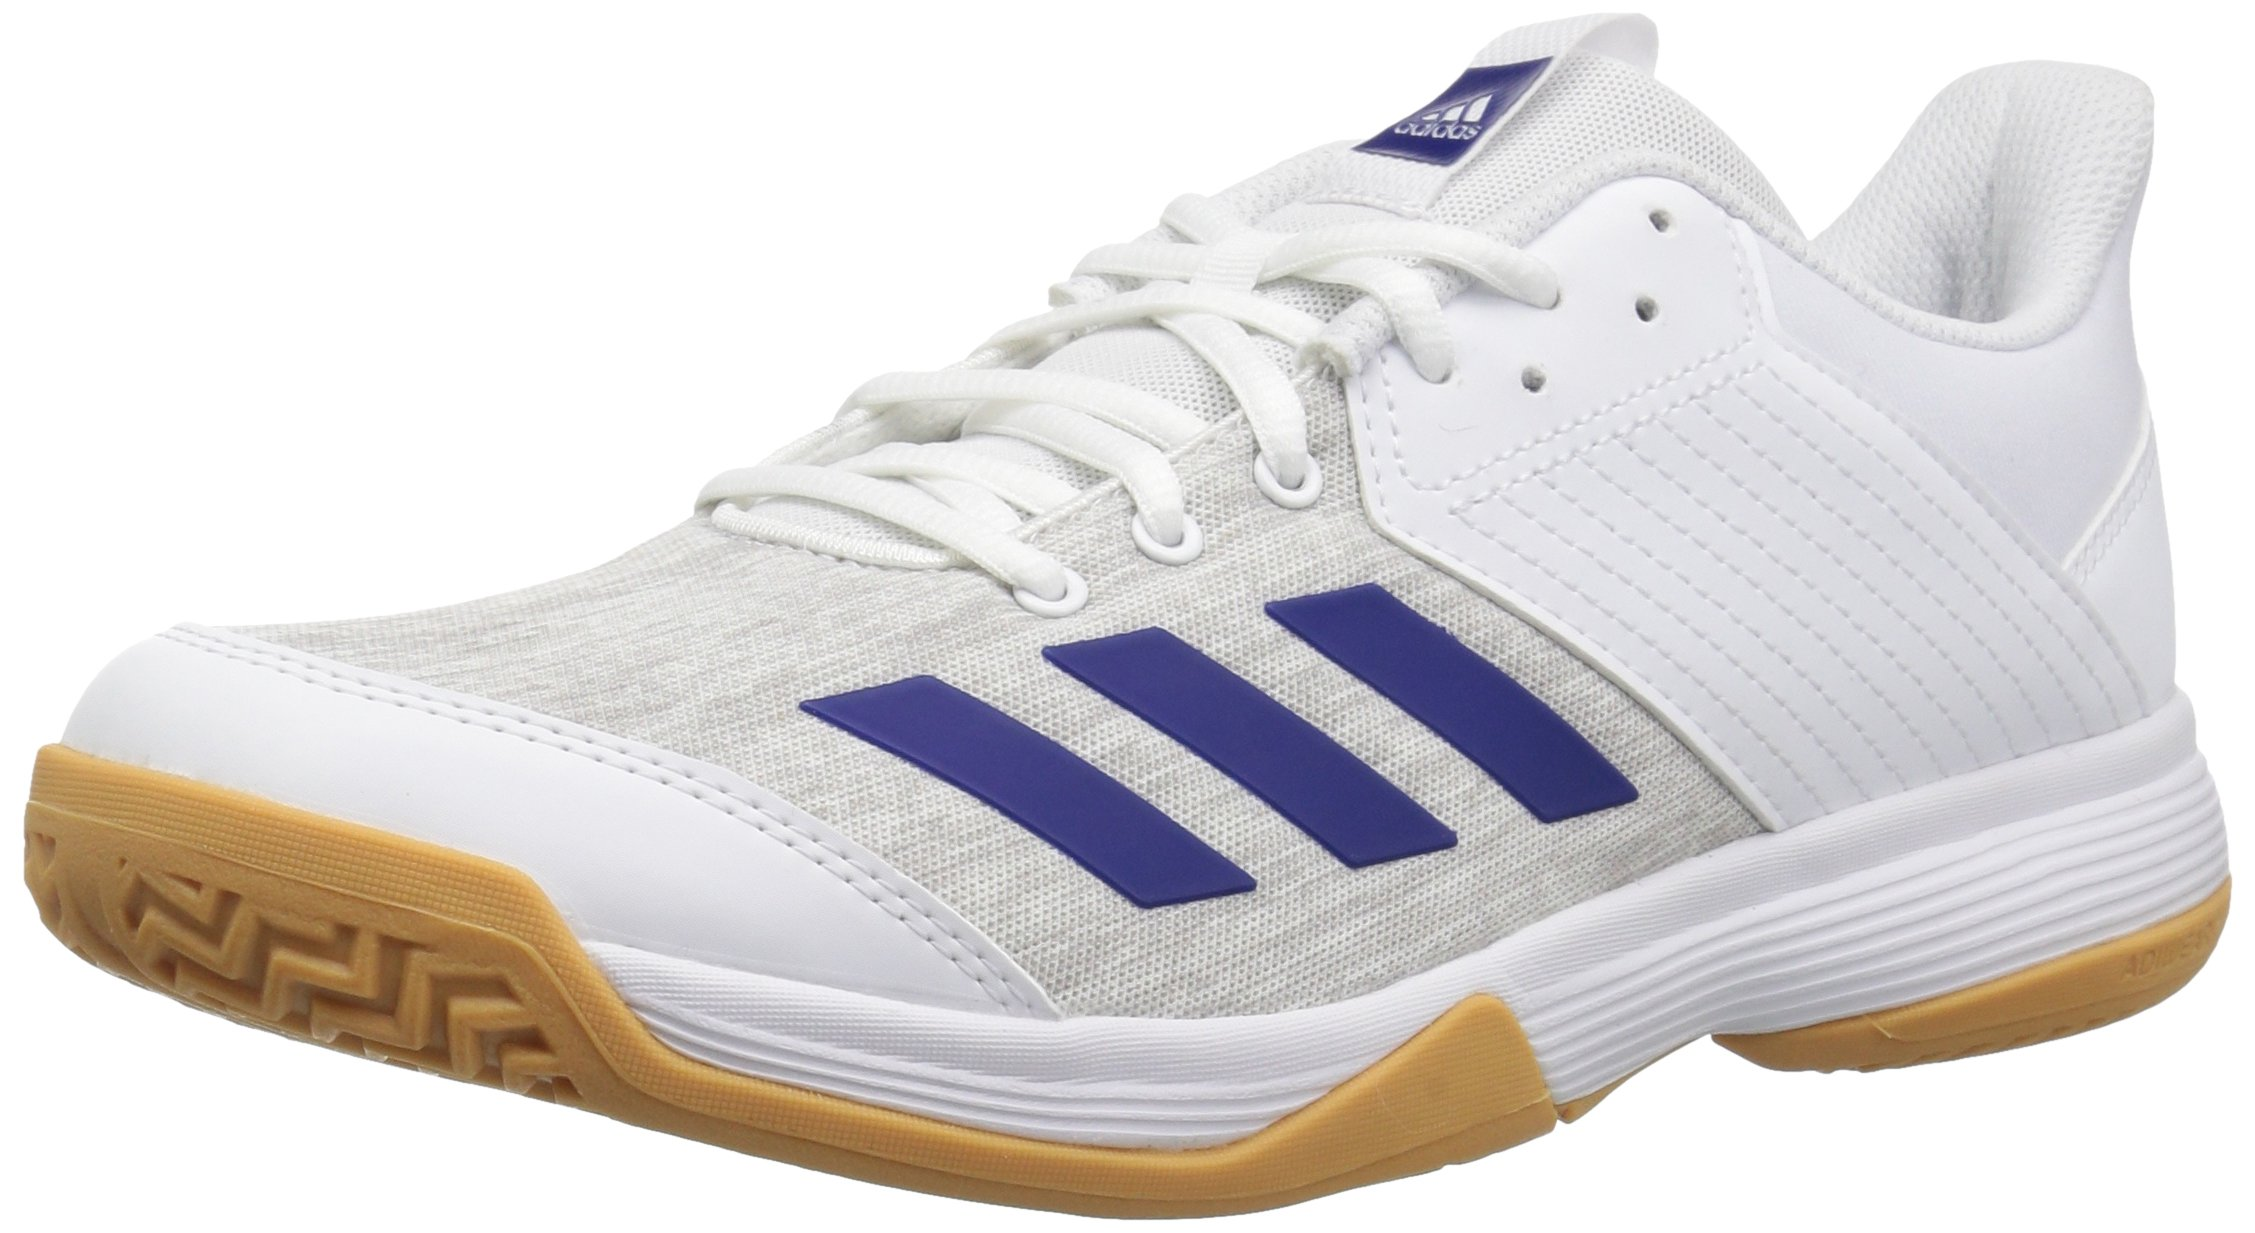 adidas Men's Ligra 6 Volleyball Shoe, White/Mystery Ink/Grey, 6 M US